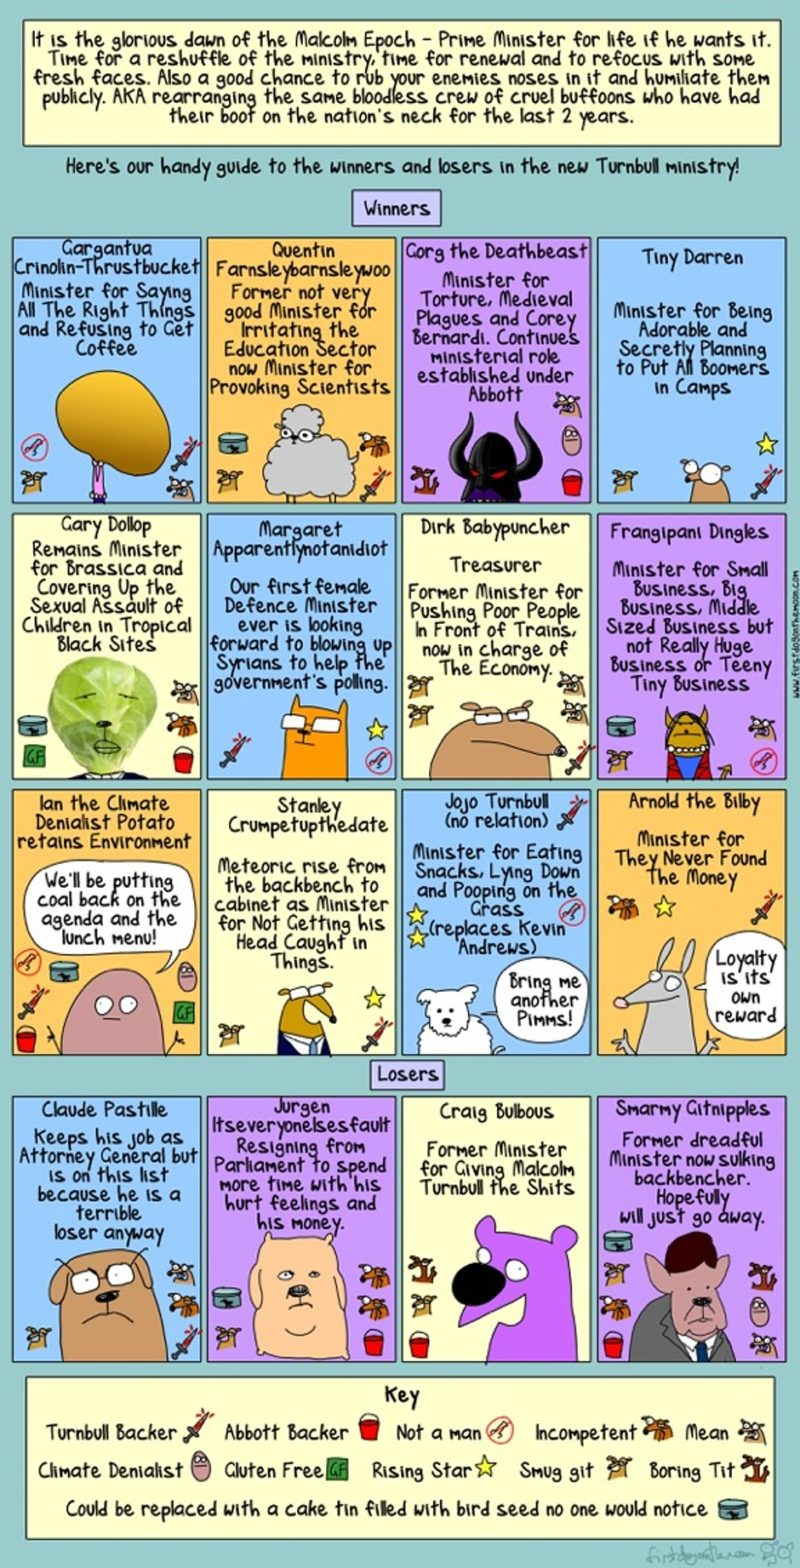 First Dog on the Moon's guide to the winners and losers in Turnbull's ministry